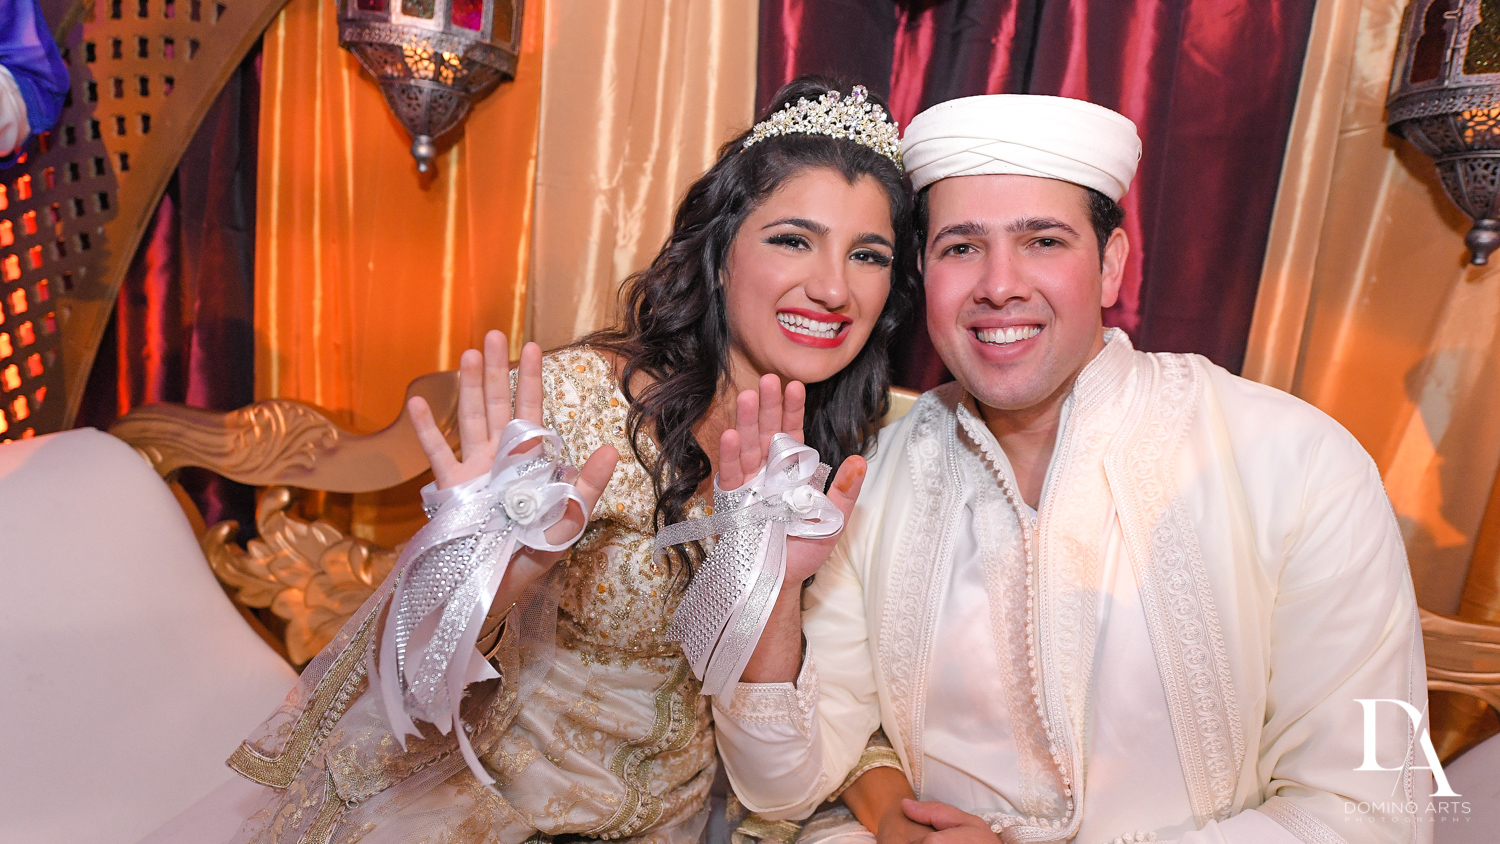 bride and groom tradition at Authentic Morrocan Jewish Henna Party by Domino Arts Photography